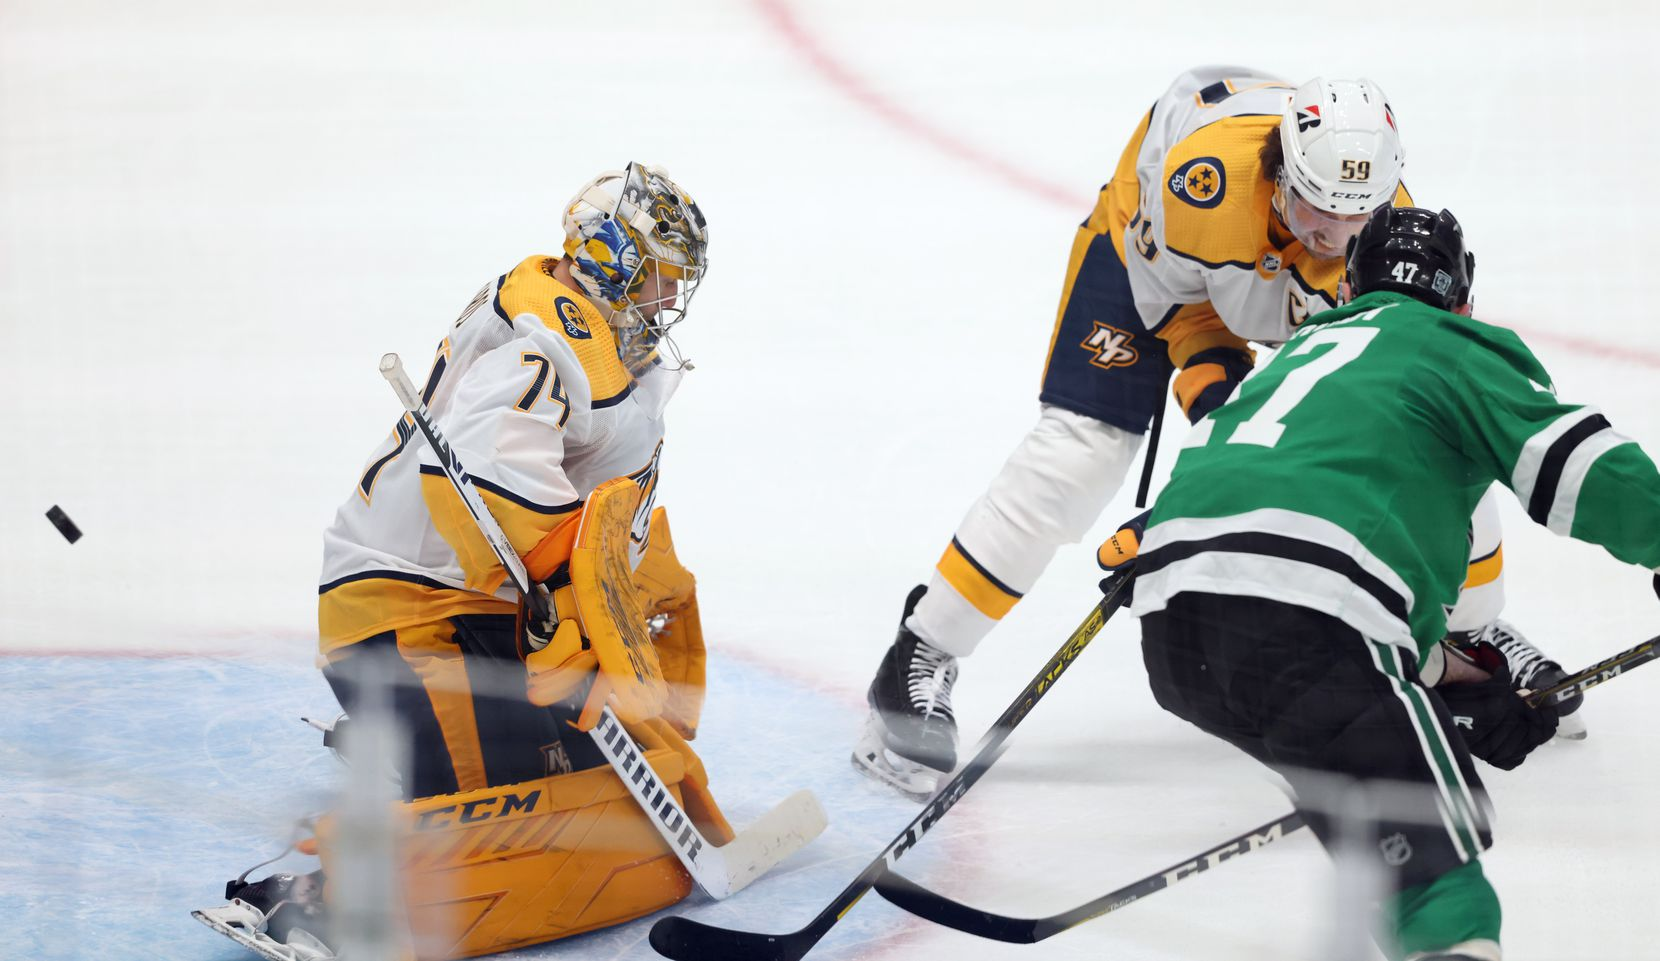 Dallas Stars right wing Alexander Radulov (47) scores his second goal of the game on Nashville Predators goaltender Juuse Saros (74) as Nashville Predators defenseman Roman Josi (59) closes in on the play during the second period of play in the Stars home opener at American Airlines Center on Friday, January 22, 2021in Dallas. (Vernon Bryant/The Dallas Morning News)